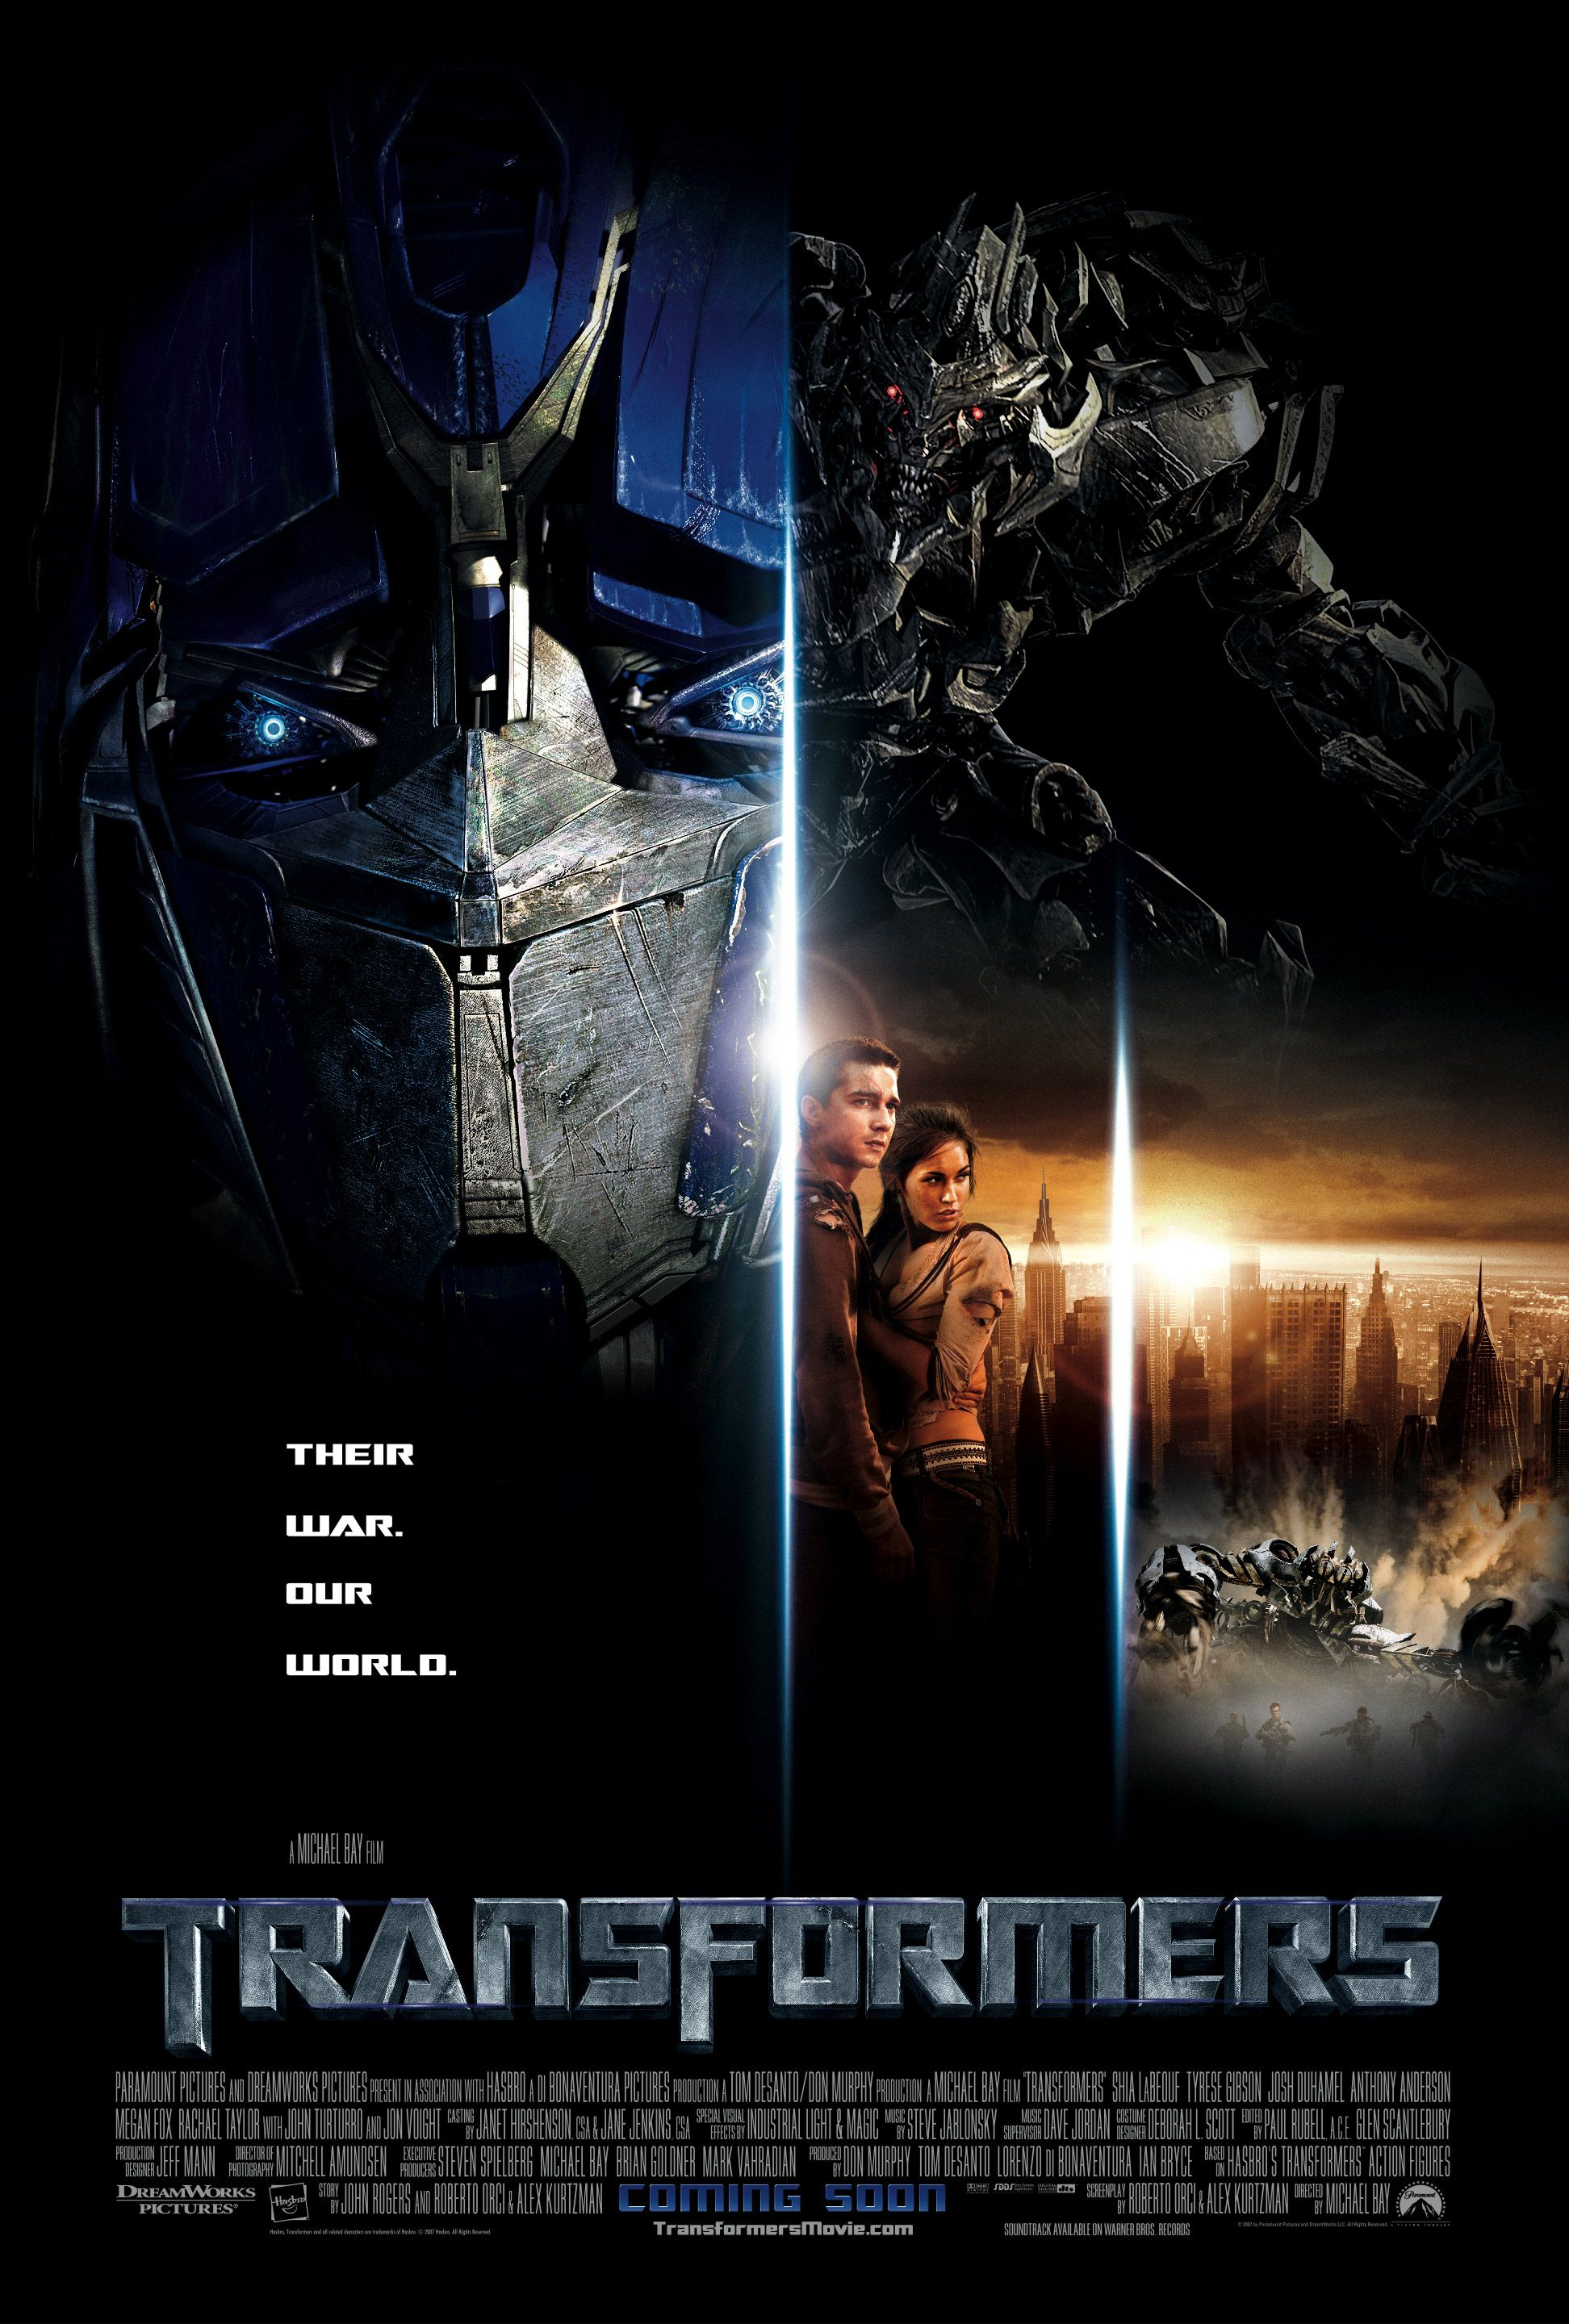 Transformers 2007 In 2020 Transformers Movie Transformers Transformers Poster